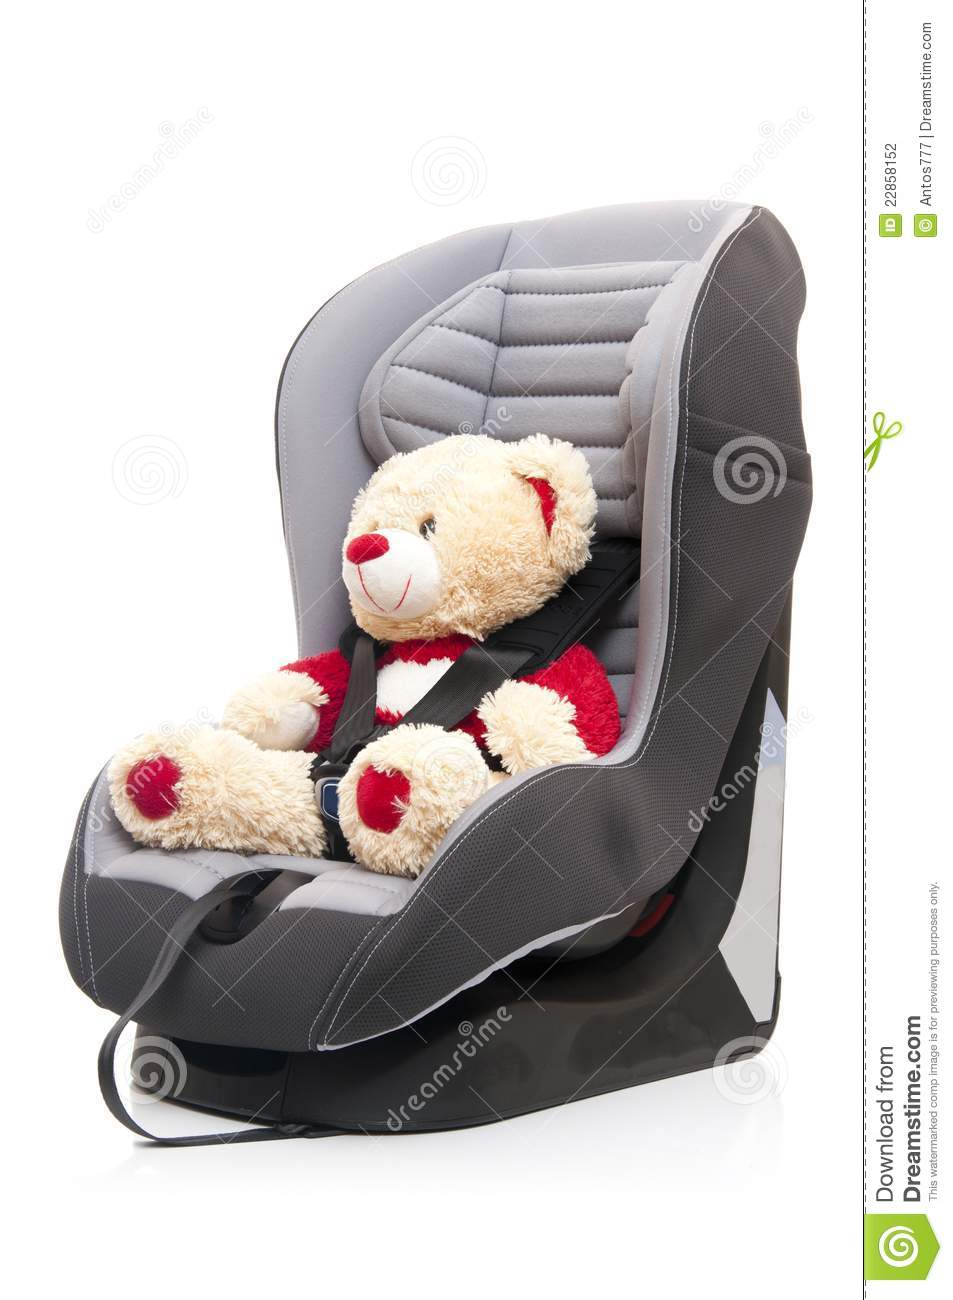 teddy bear sitting on child 39 s car seat stock photography image 22858152. Black Bedroom Furniture Sets. Home Design Ideas